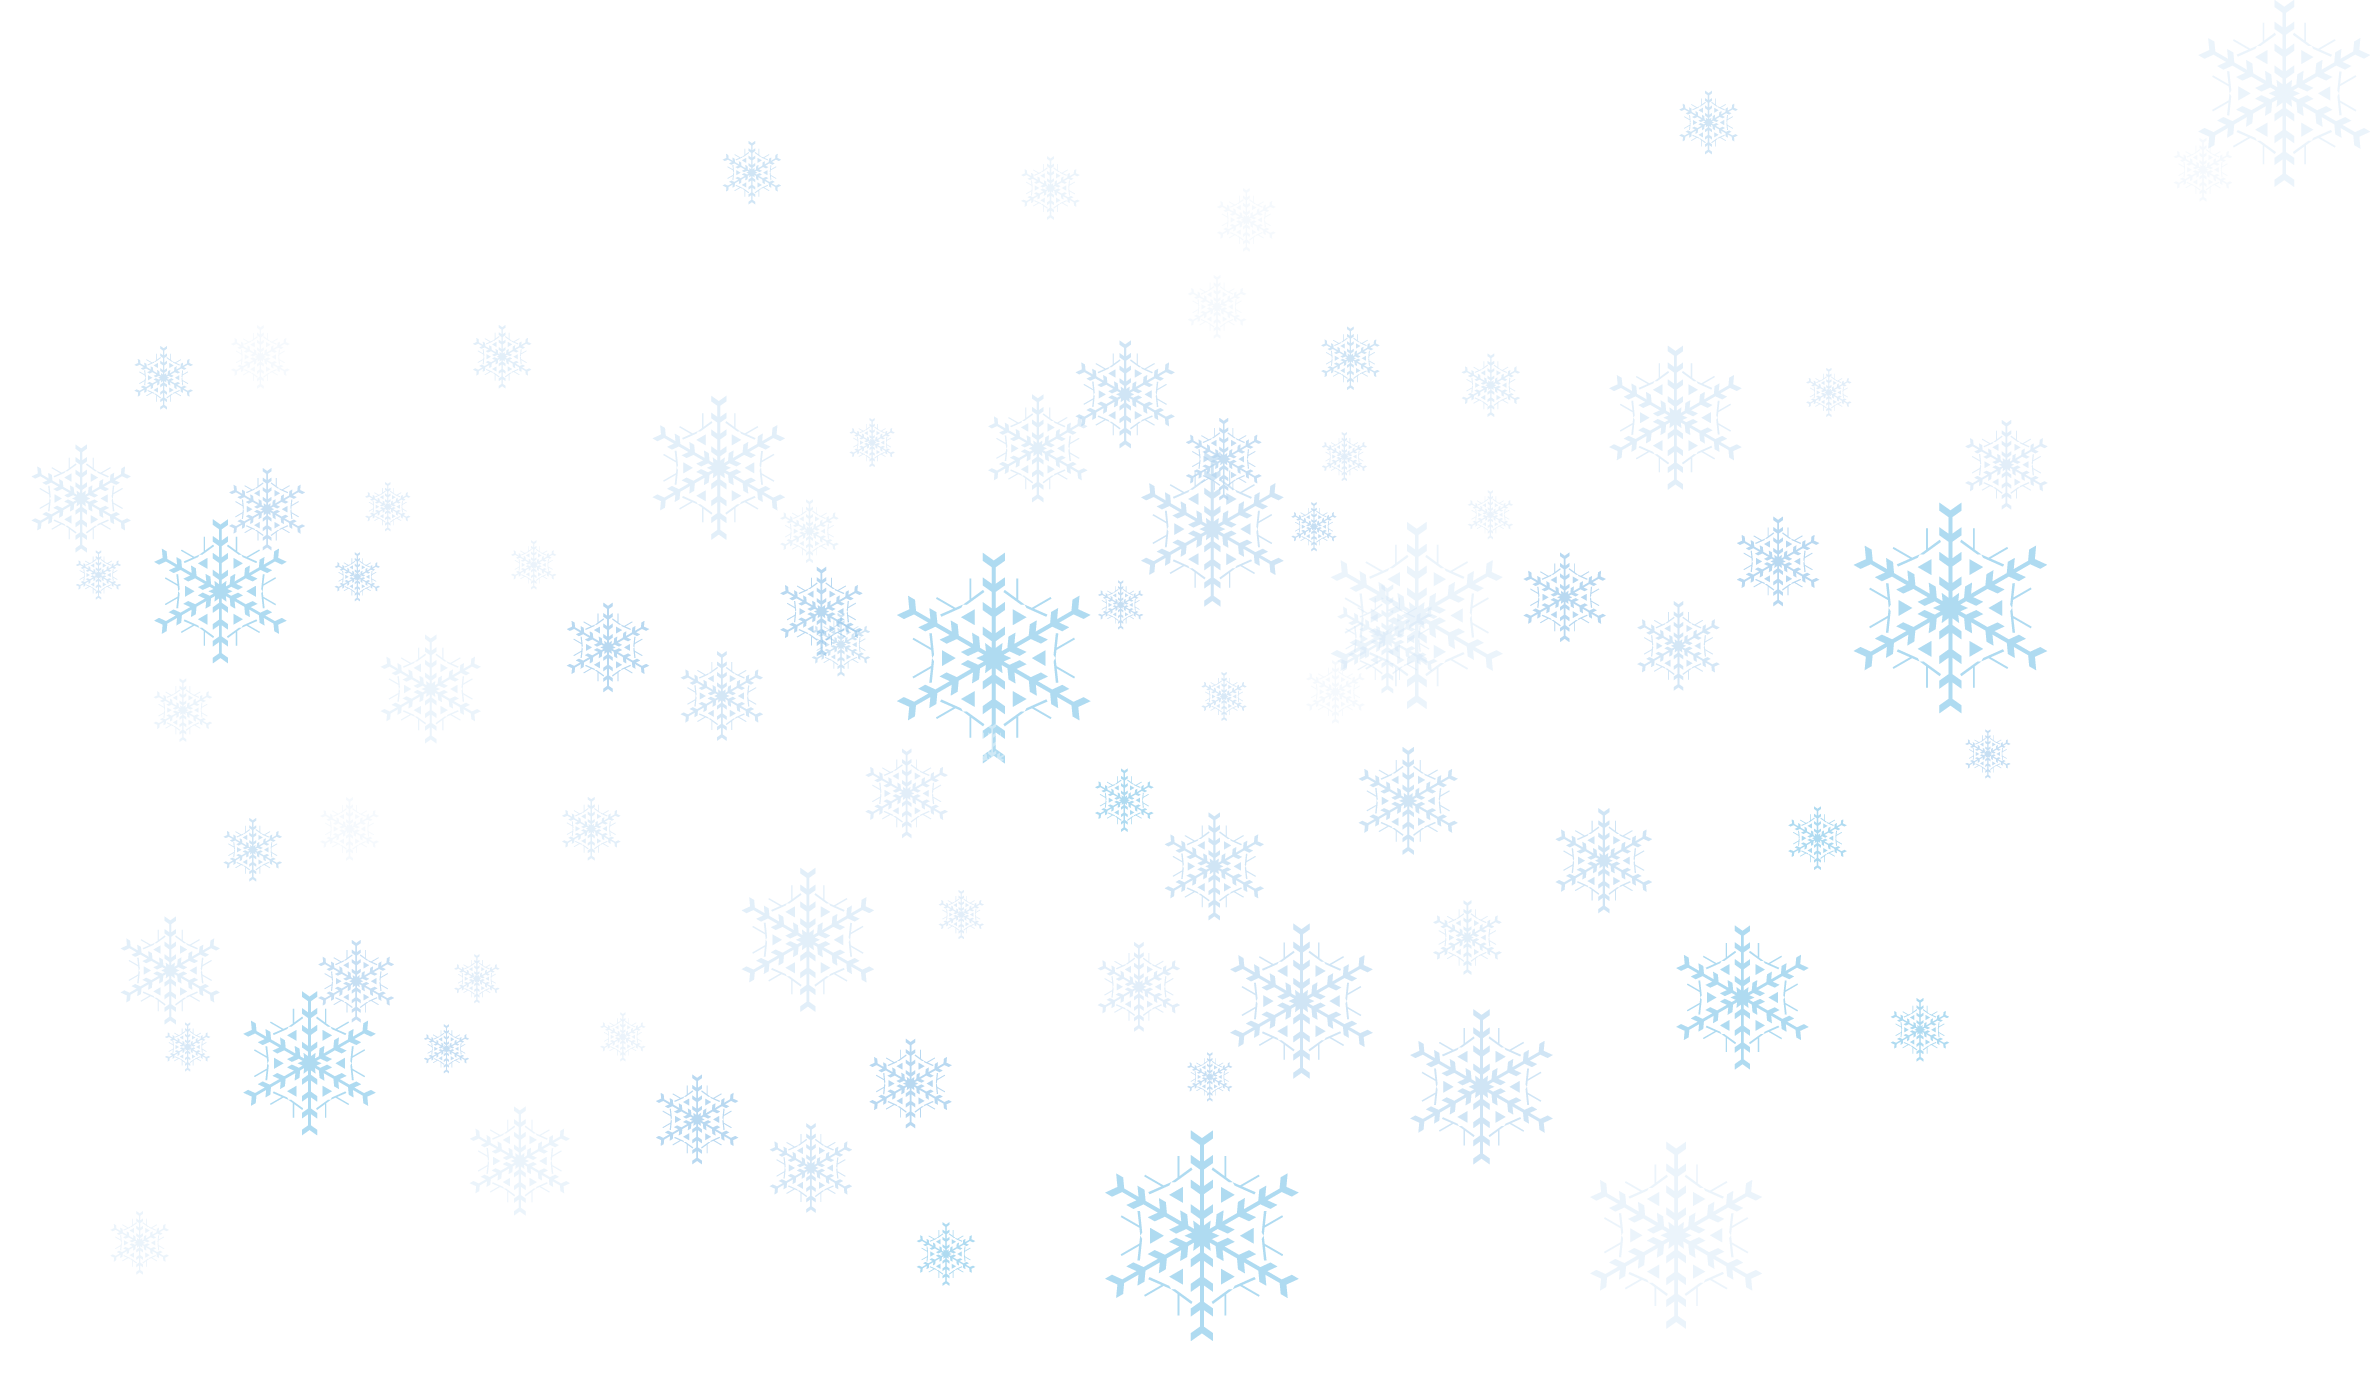 White Snowflakes Png image #41266